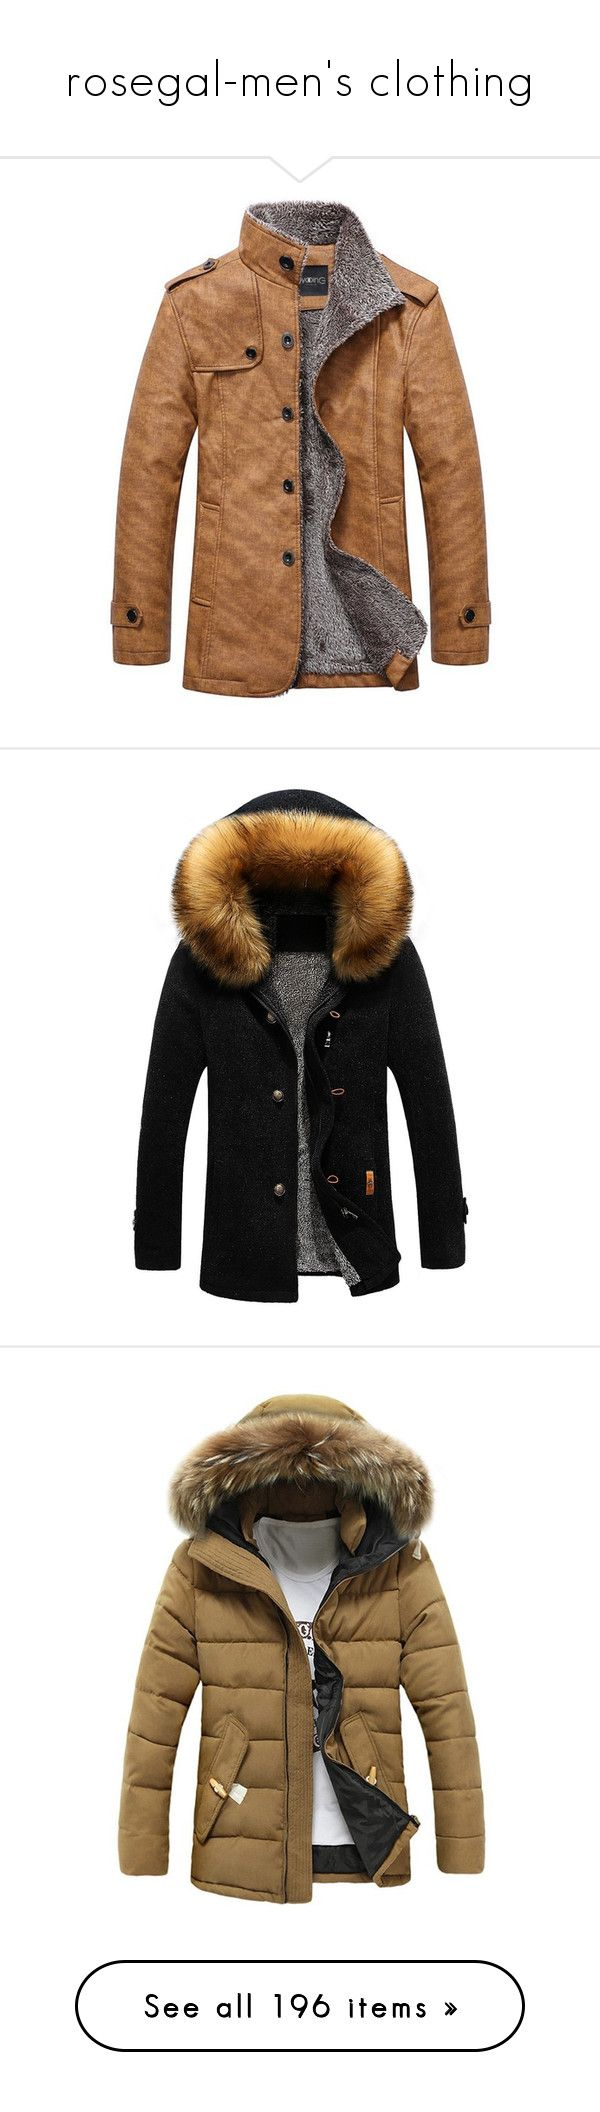 """rosegal-men's clothing"" by rosegal-official ❤ liked on Polyvore featuring men's fashion, men's clothing, men's outerwear, men's jackets, men's stand collar jacket, mens fur hood jacket, mens zip up jackets, men's coats, mens quilted coat and jackets"